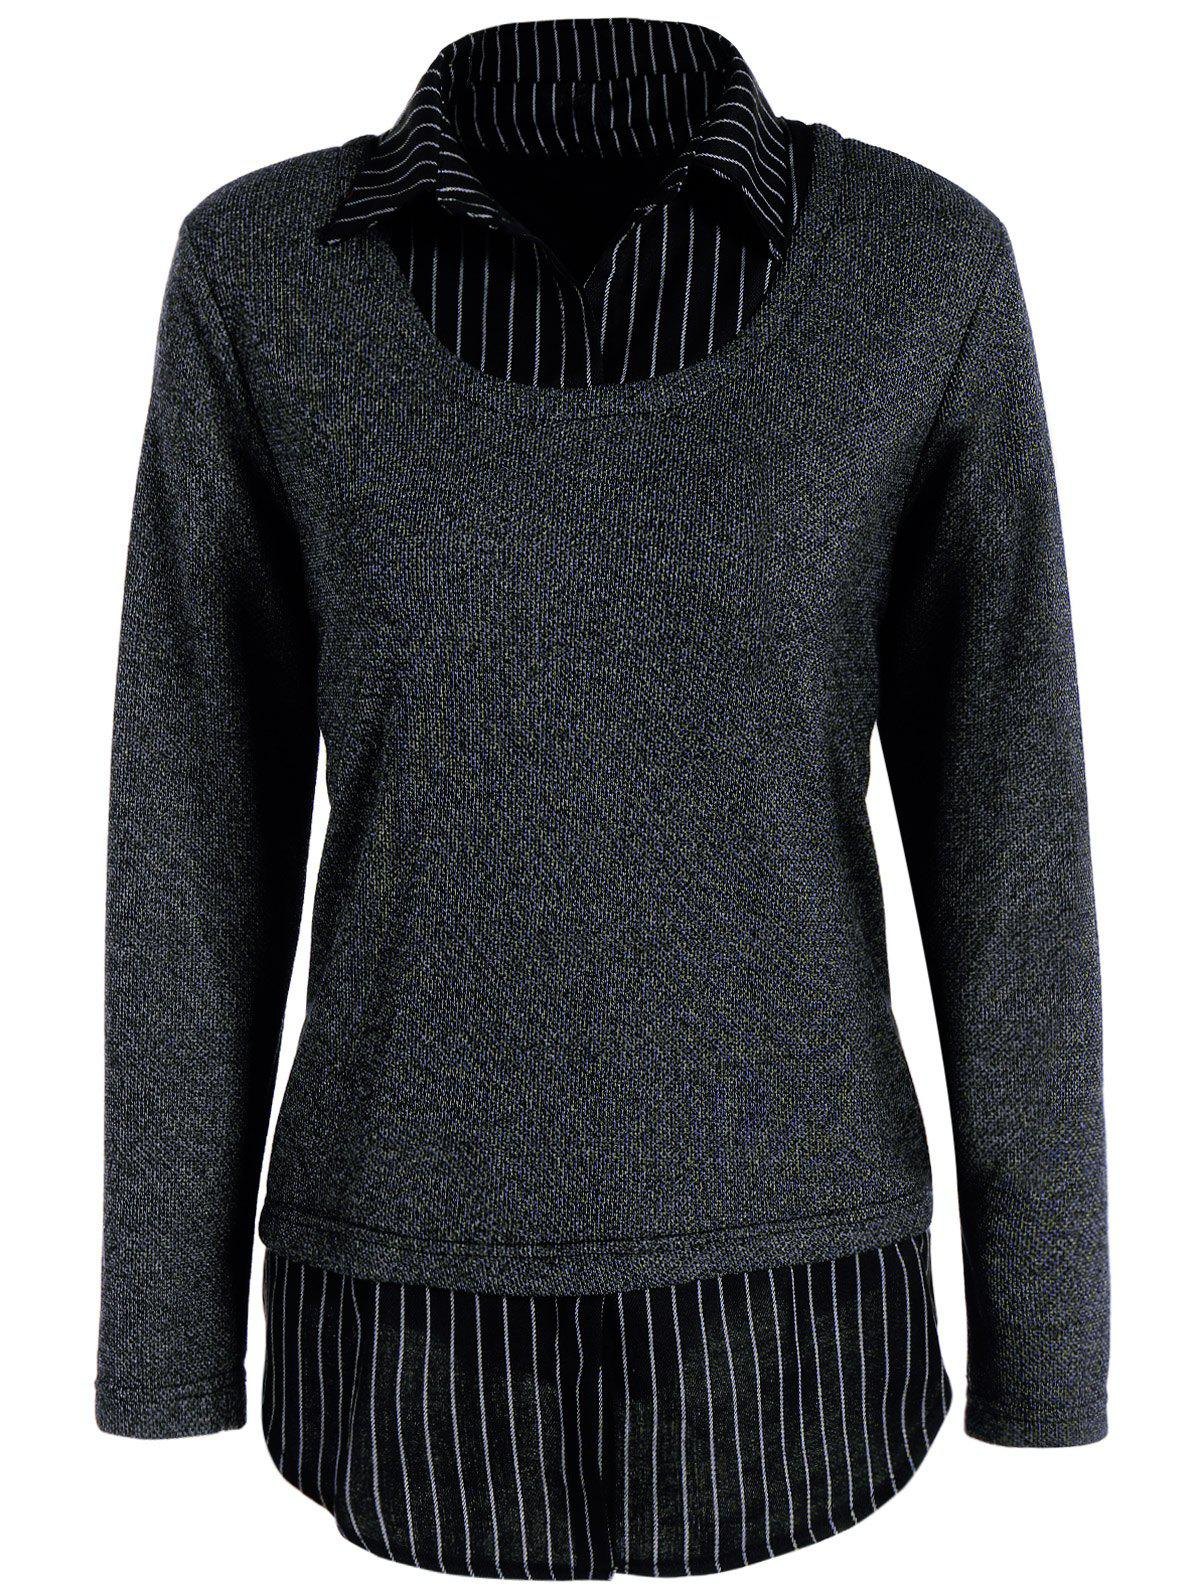 Striped Shirt Collar Fake Twinset TopWOMEN<br><br>Size: 5XL; Color: DEEP GRAY; Material: Polyester; Shirt Length: Long; Sleeve Length: Full; Collar: Shirt Collar; Style: Fashion; Season: Fall,Winter; Pattern Type: Striped; Weight: 0.450kg; Package Contents: 1 x Top;